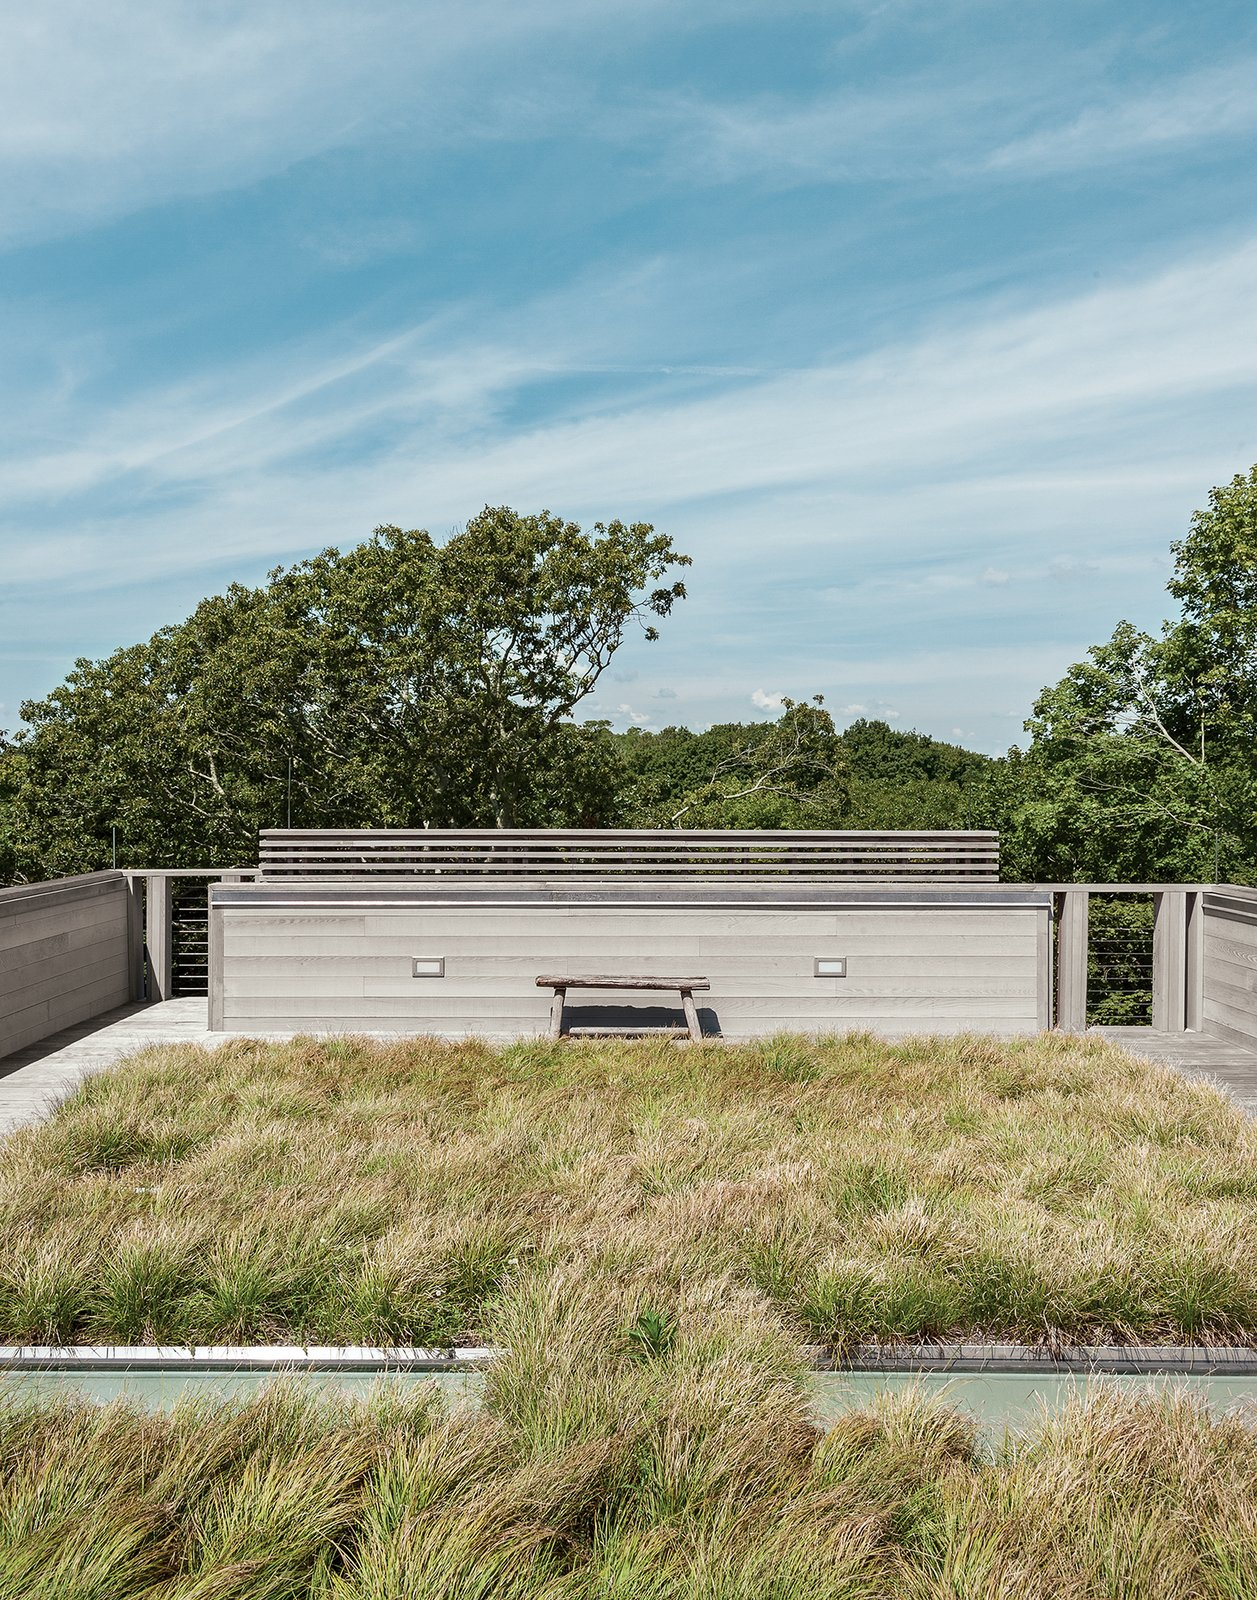 """Outdoor and Rooftop Landscape architects Reed Hilderbrand helped fill out the completed prefab by planting sedge grass on one of the house's two green roofs to reflect the texture of the surrounding meadow.  Search """"bright green prefab sweden looks just monopoly house"""" from An Unconventional Prefab on Fishers Island"""